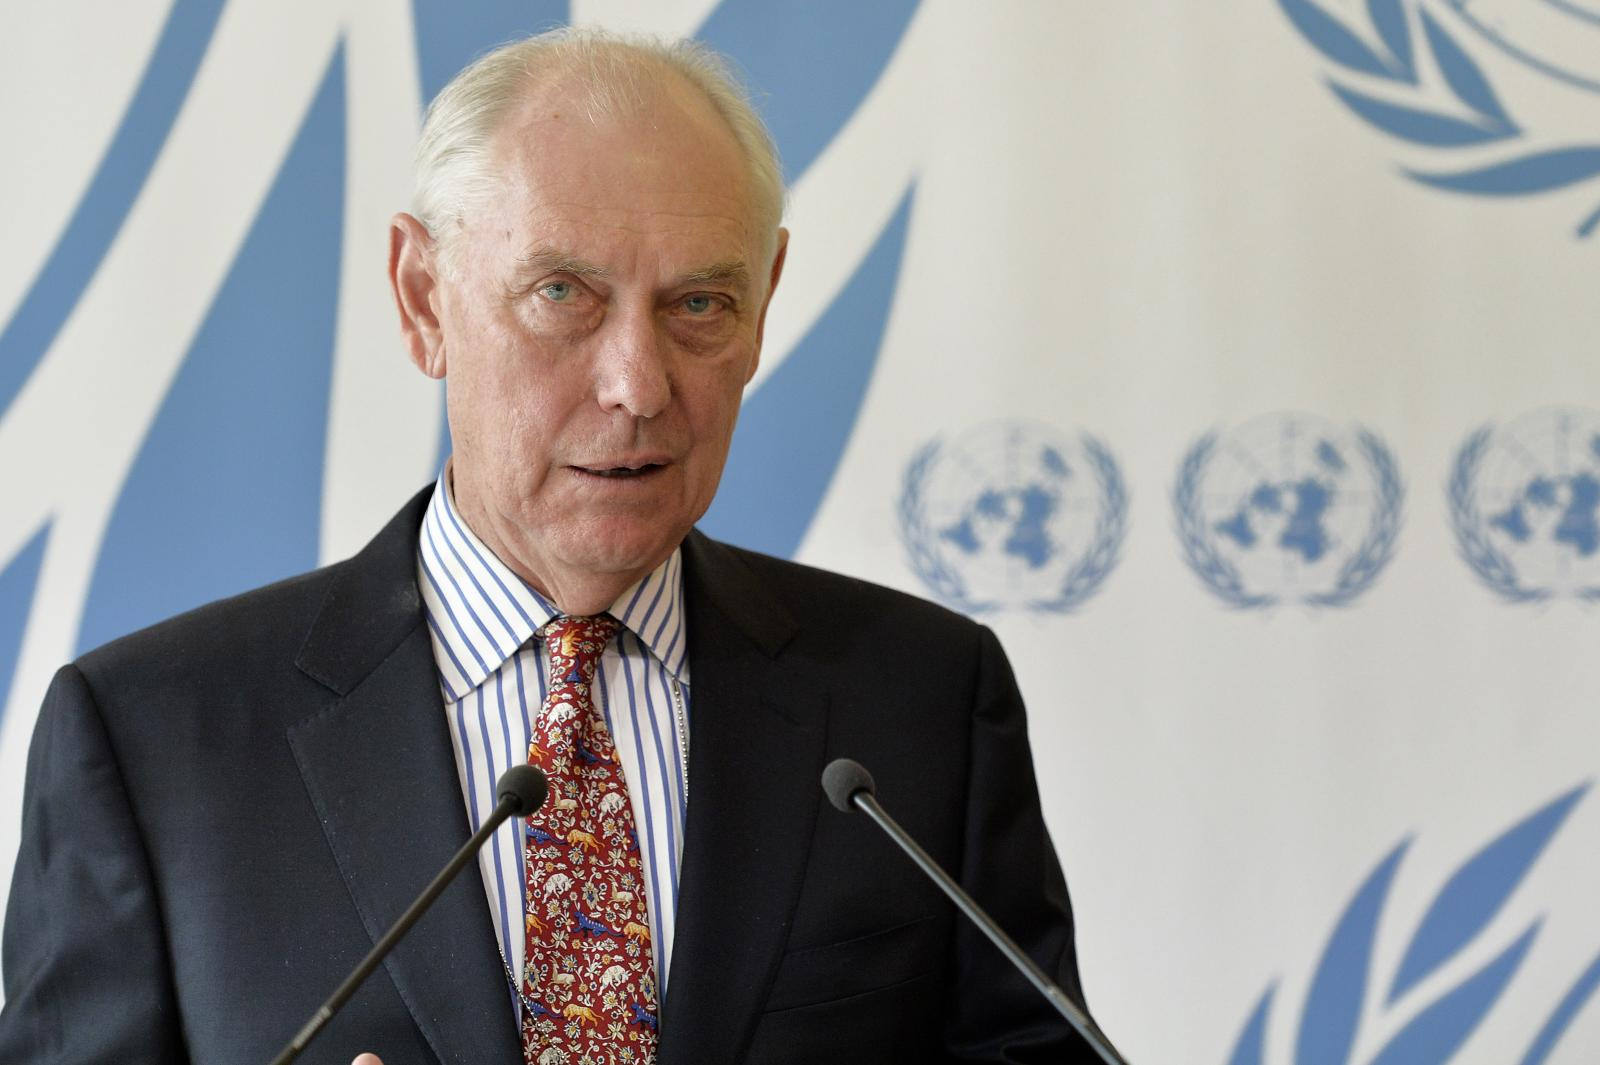 Mike Smith, Chairperson, Commission of Inquiry on Eritrea